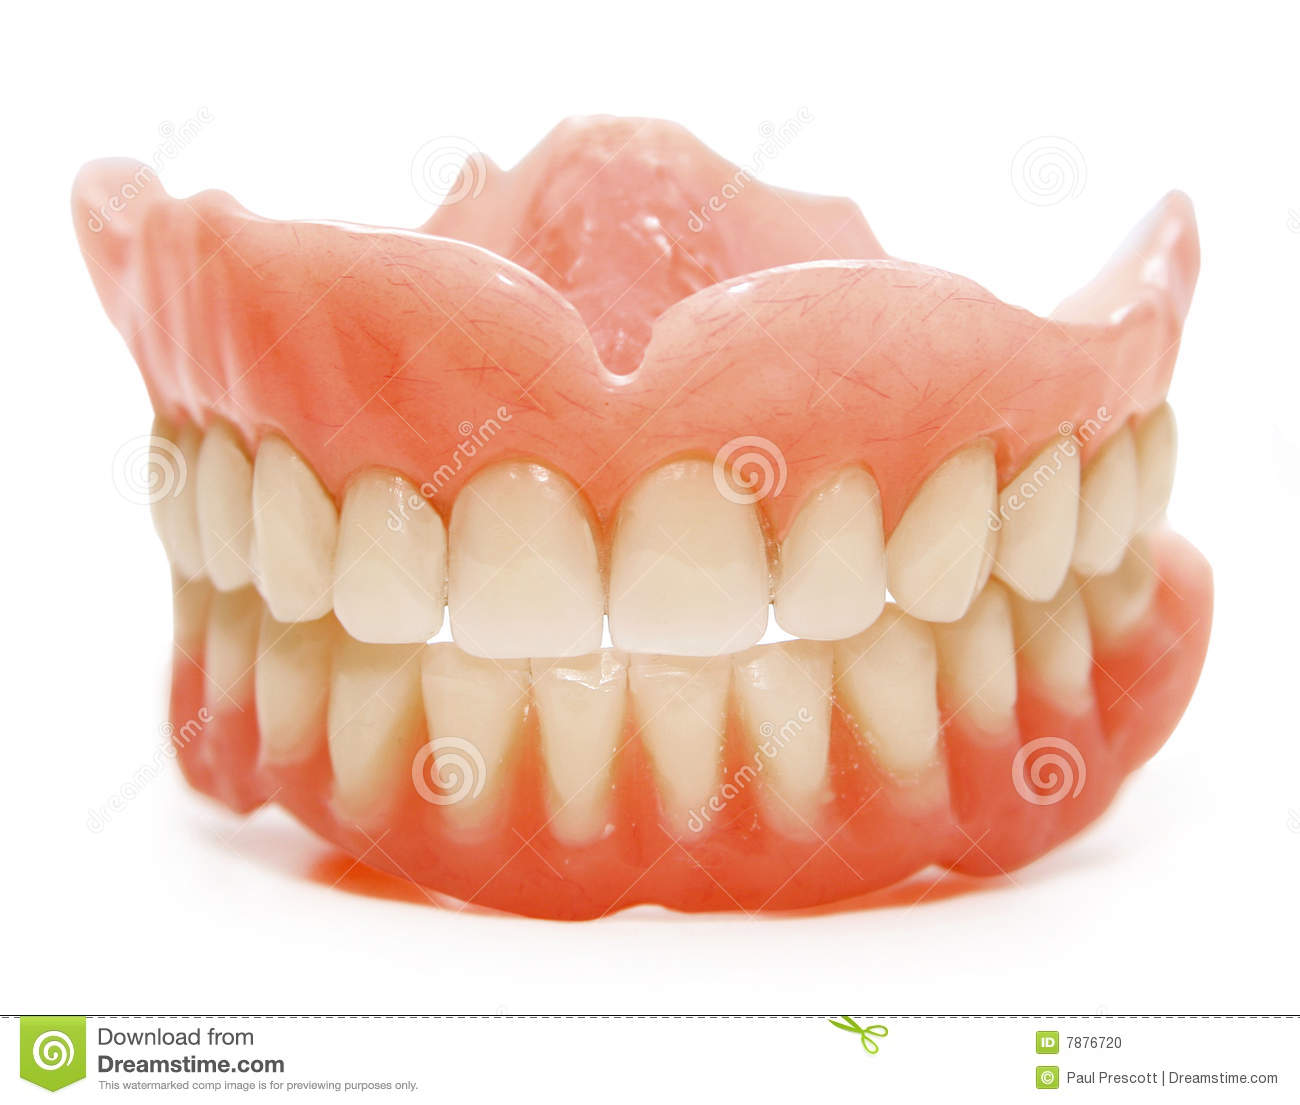 Upper And Lower Jaws Aren't On Top Of Each Other? : Dentistry